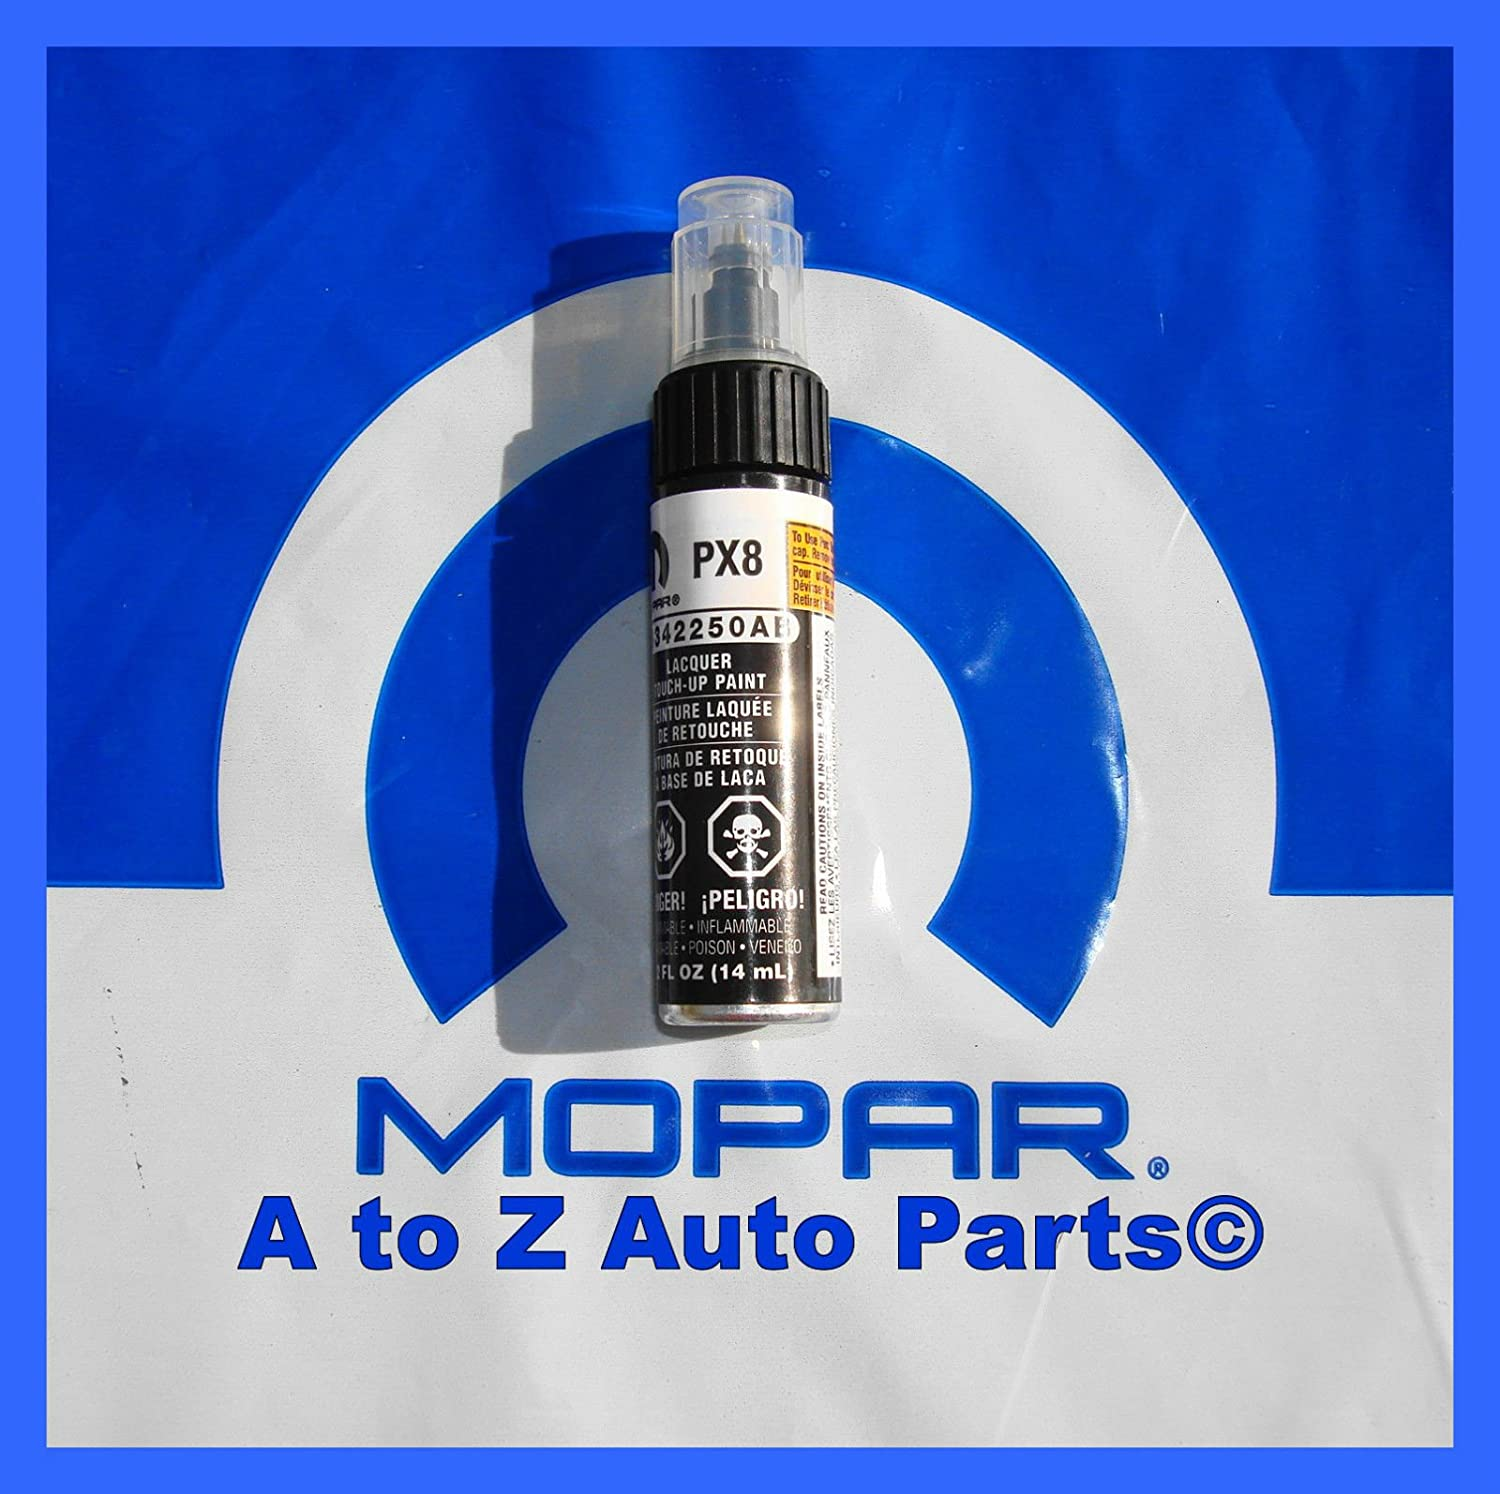 Mopar OEM Touch-Up Paint